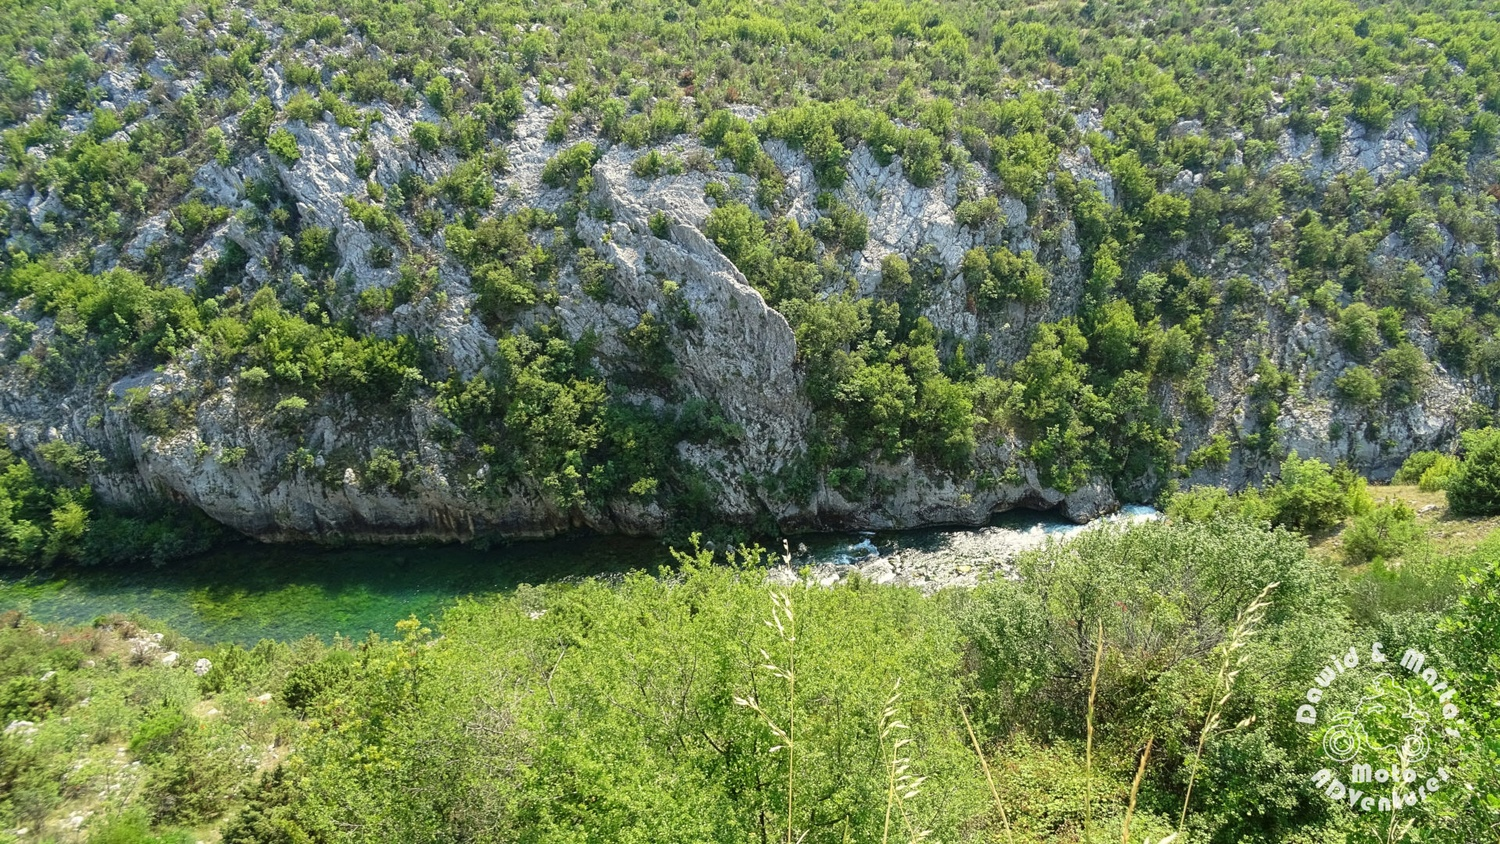 The Cetina River canyon bottom